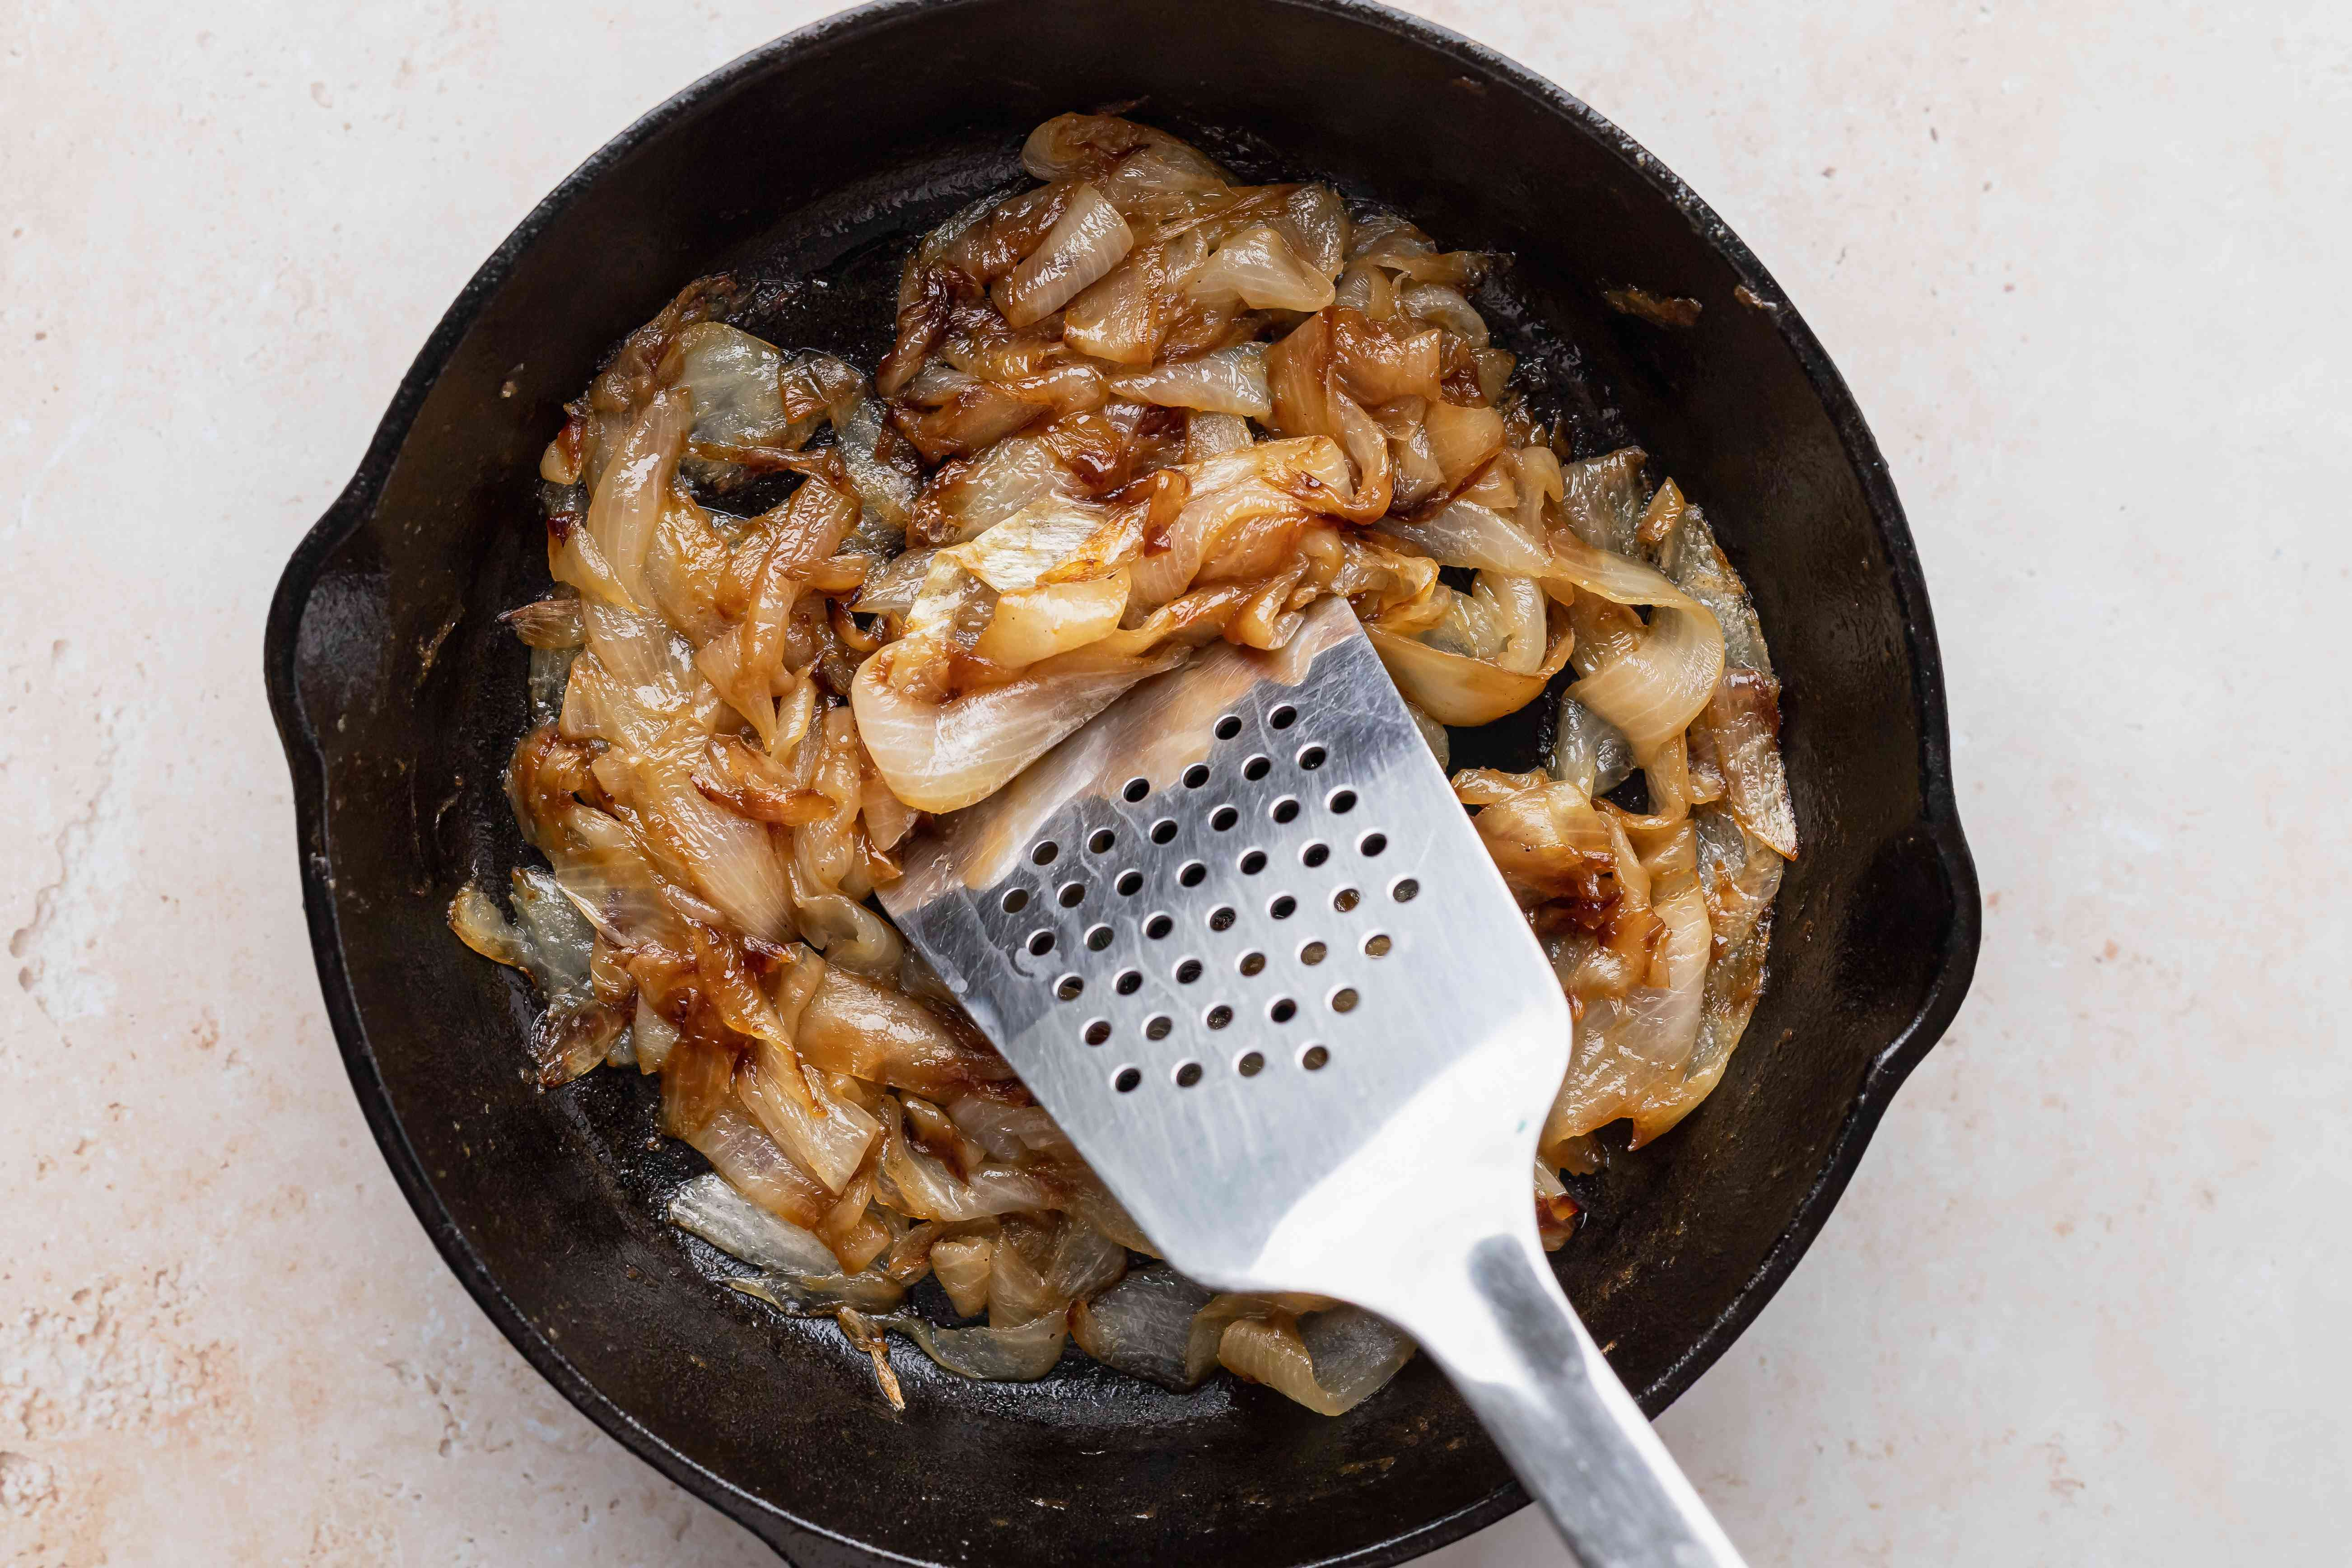 A metal spatula stirring onions in a cast iron skillet to show how to saute onions.